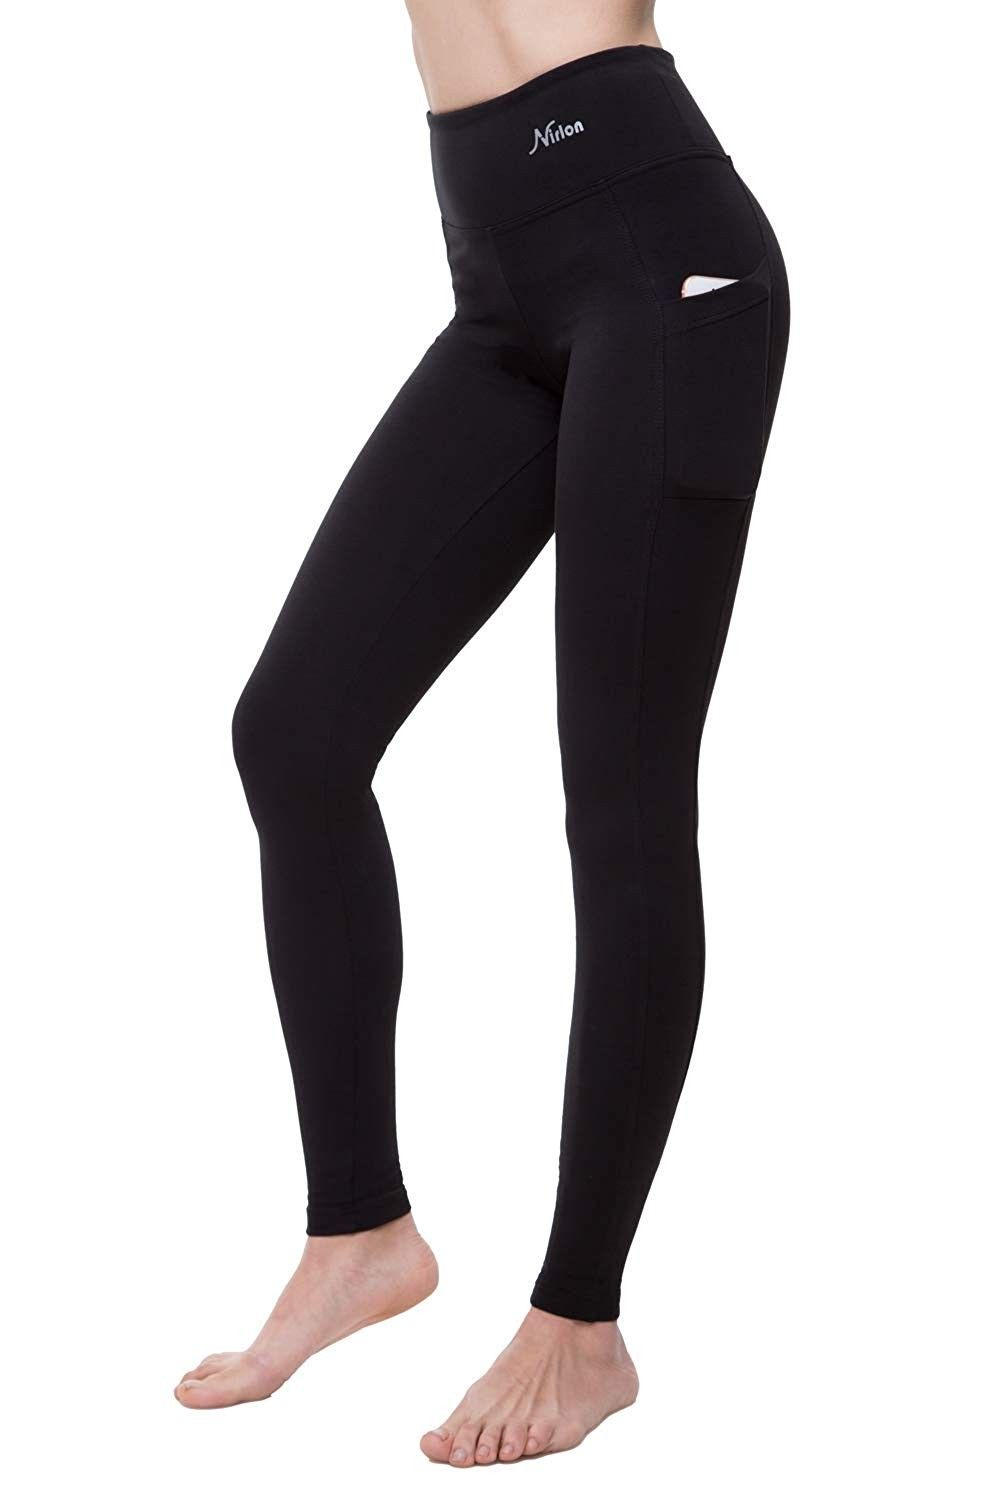 Yoga Pants for Women High Waist Tummy Control Athletic Workout Running Leggings with Sides Pockets -...